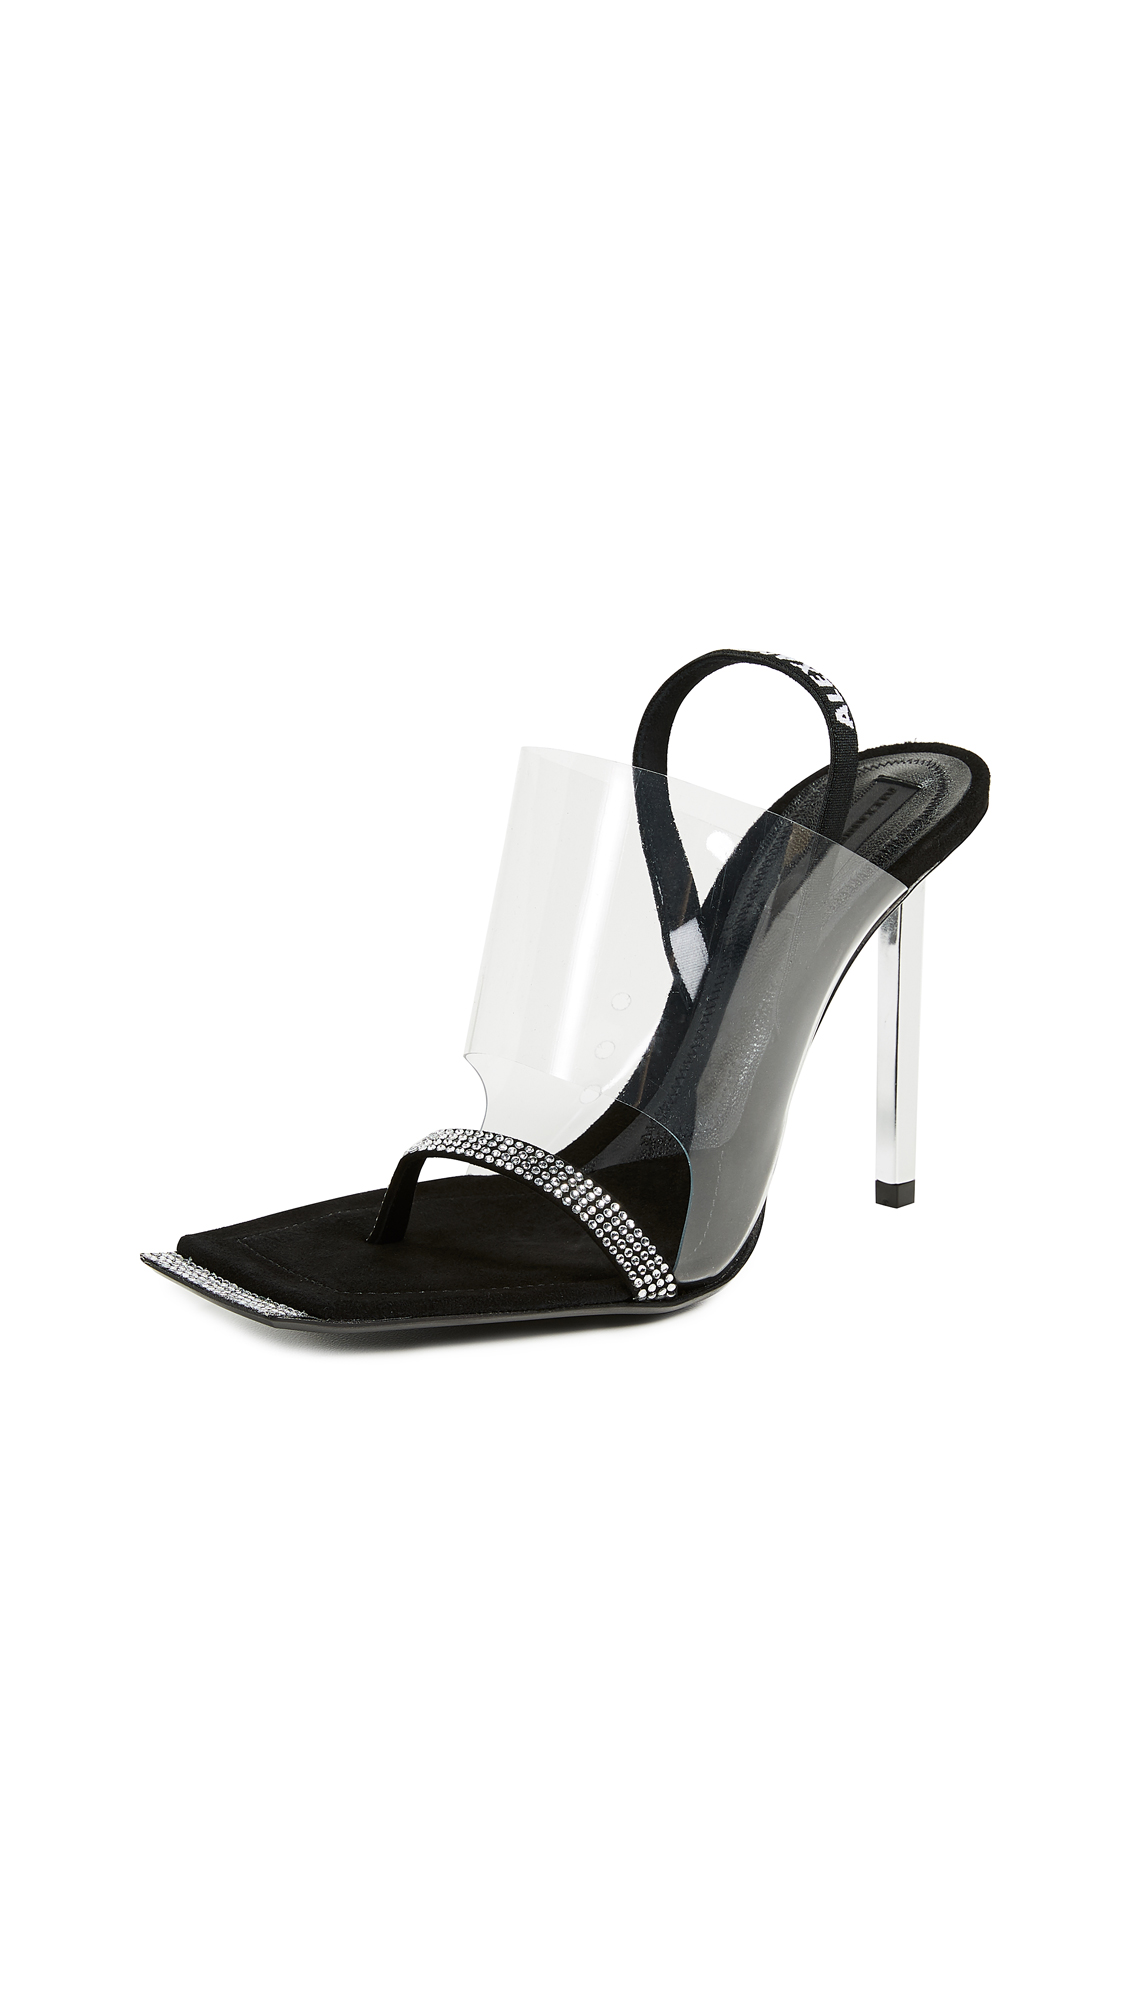 Alexander Wang Kaia Sandals - Black